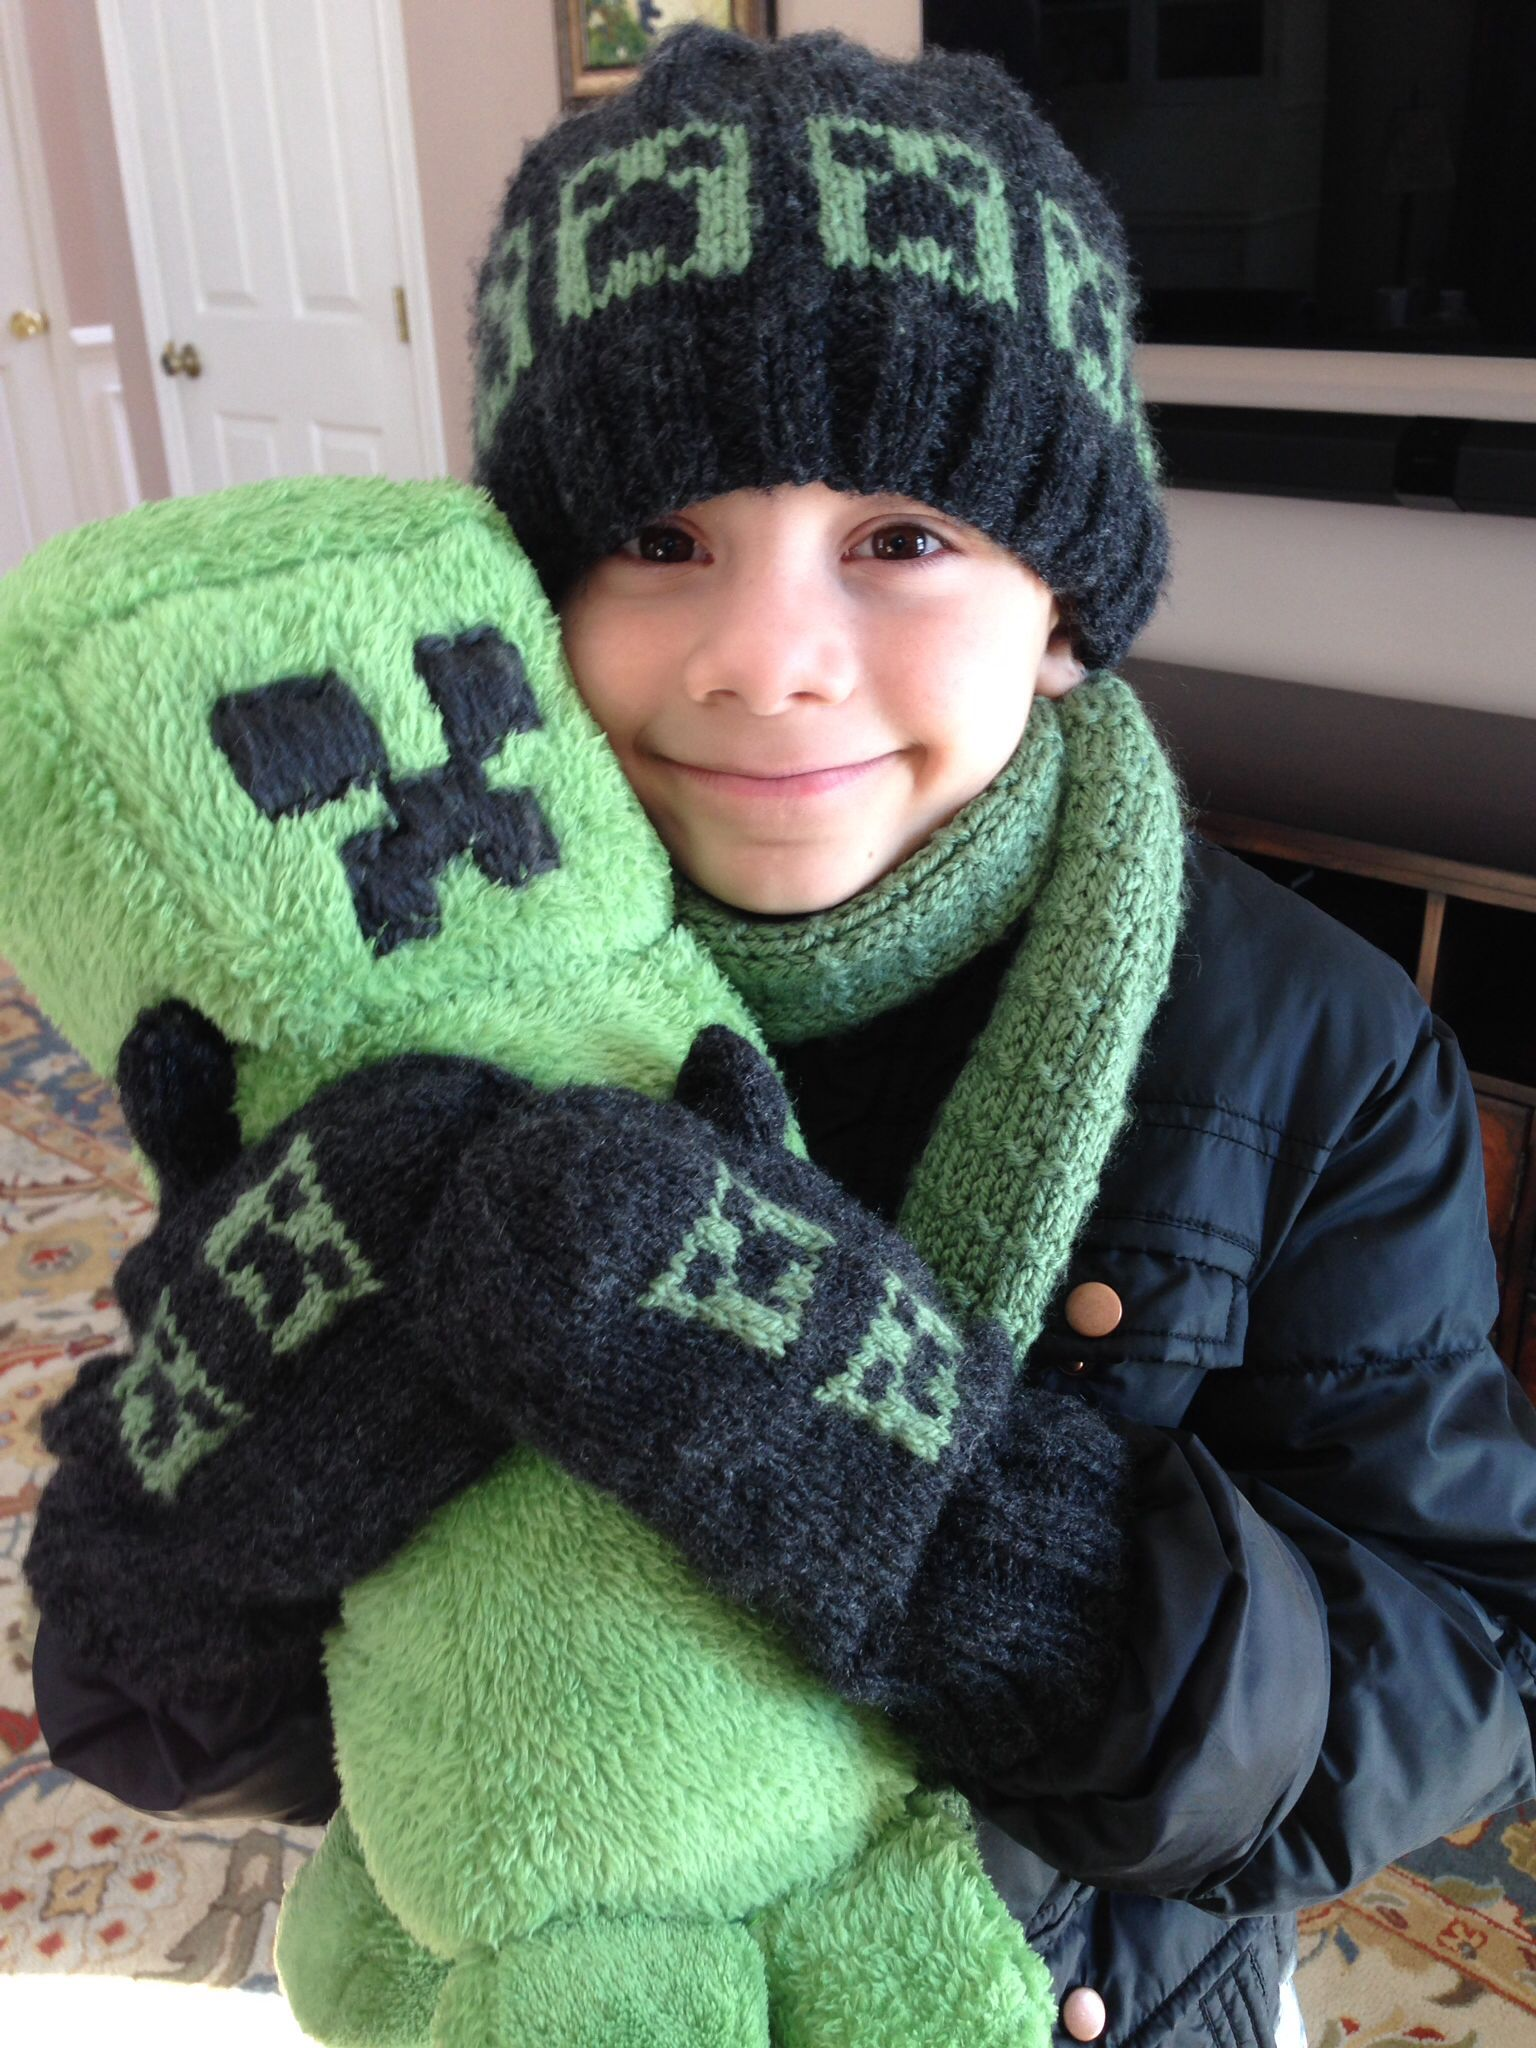 Minecraft hat pattern can be found on Ravelry. Creeper doll cost $30 ...